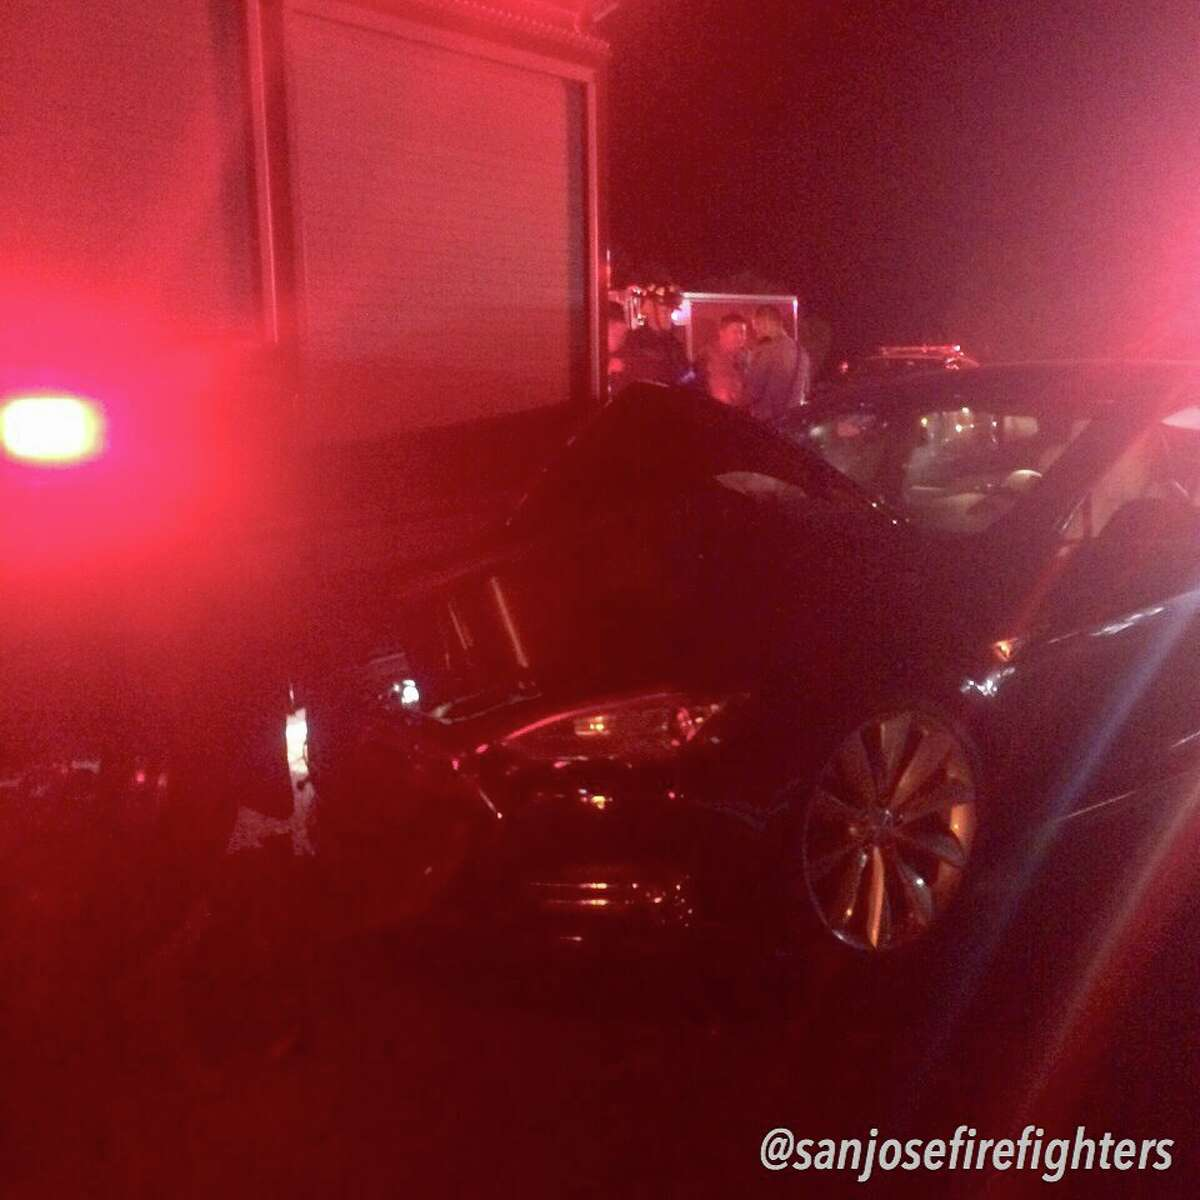 A 37-year-old Monterey man was arrested on suspicion of driving under the influence after he crashed his Tesla sedan into the back of a San Jose Fire Department engine early Saturday morning, according to the California Highway Patrol.